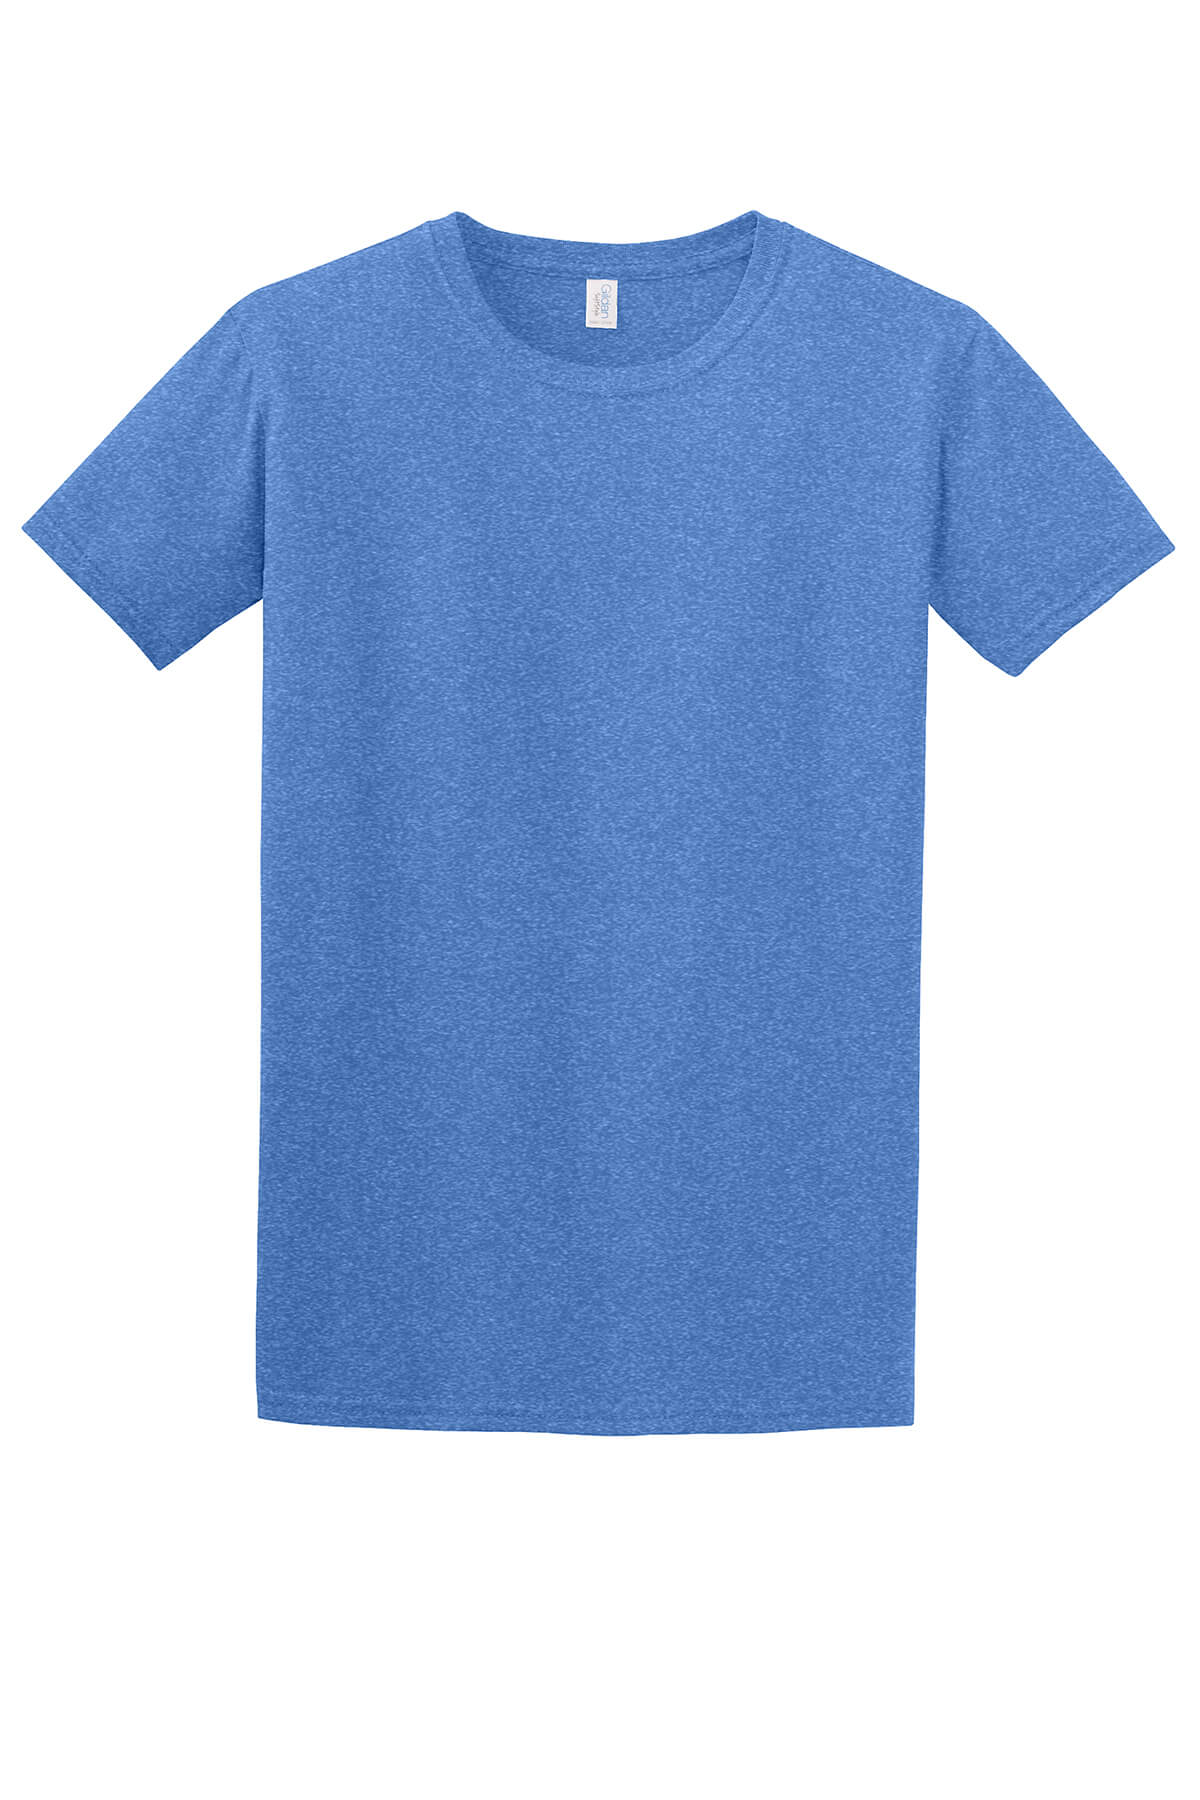 Heather Royal T-Shirt Mode Front